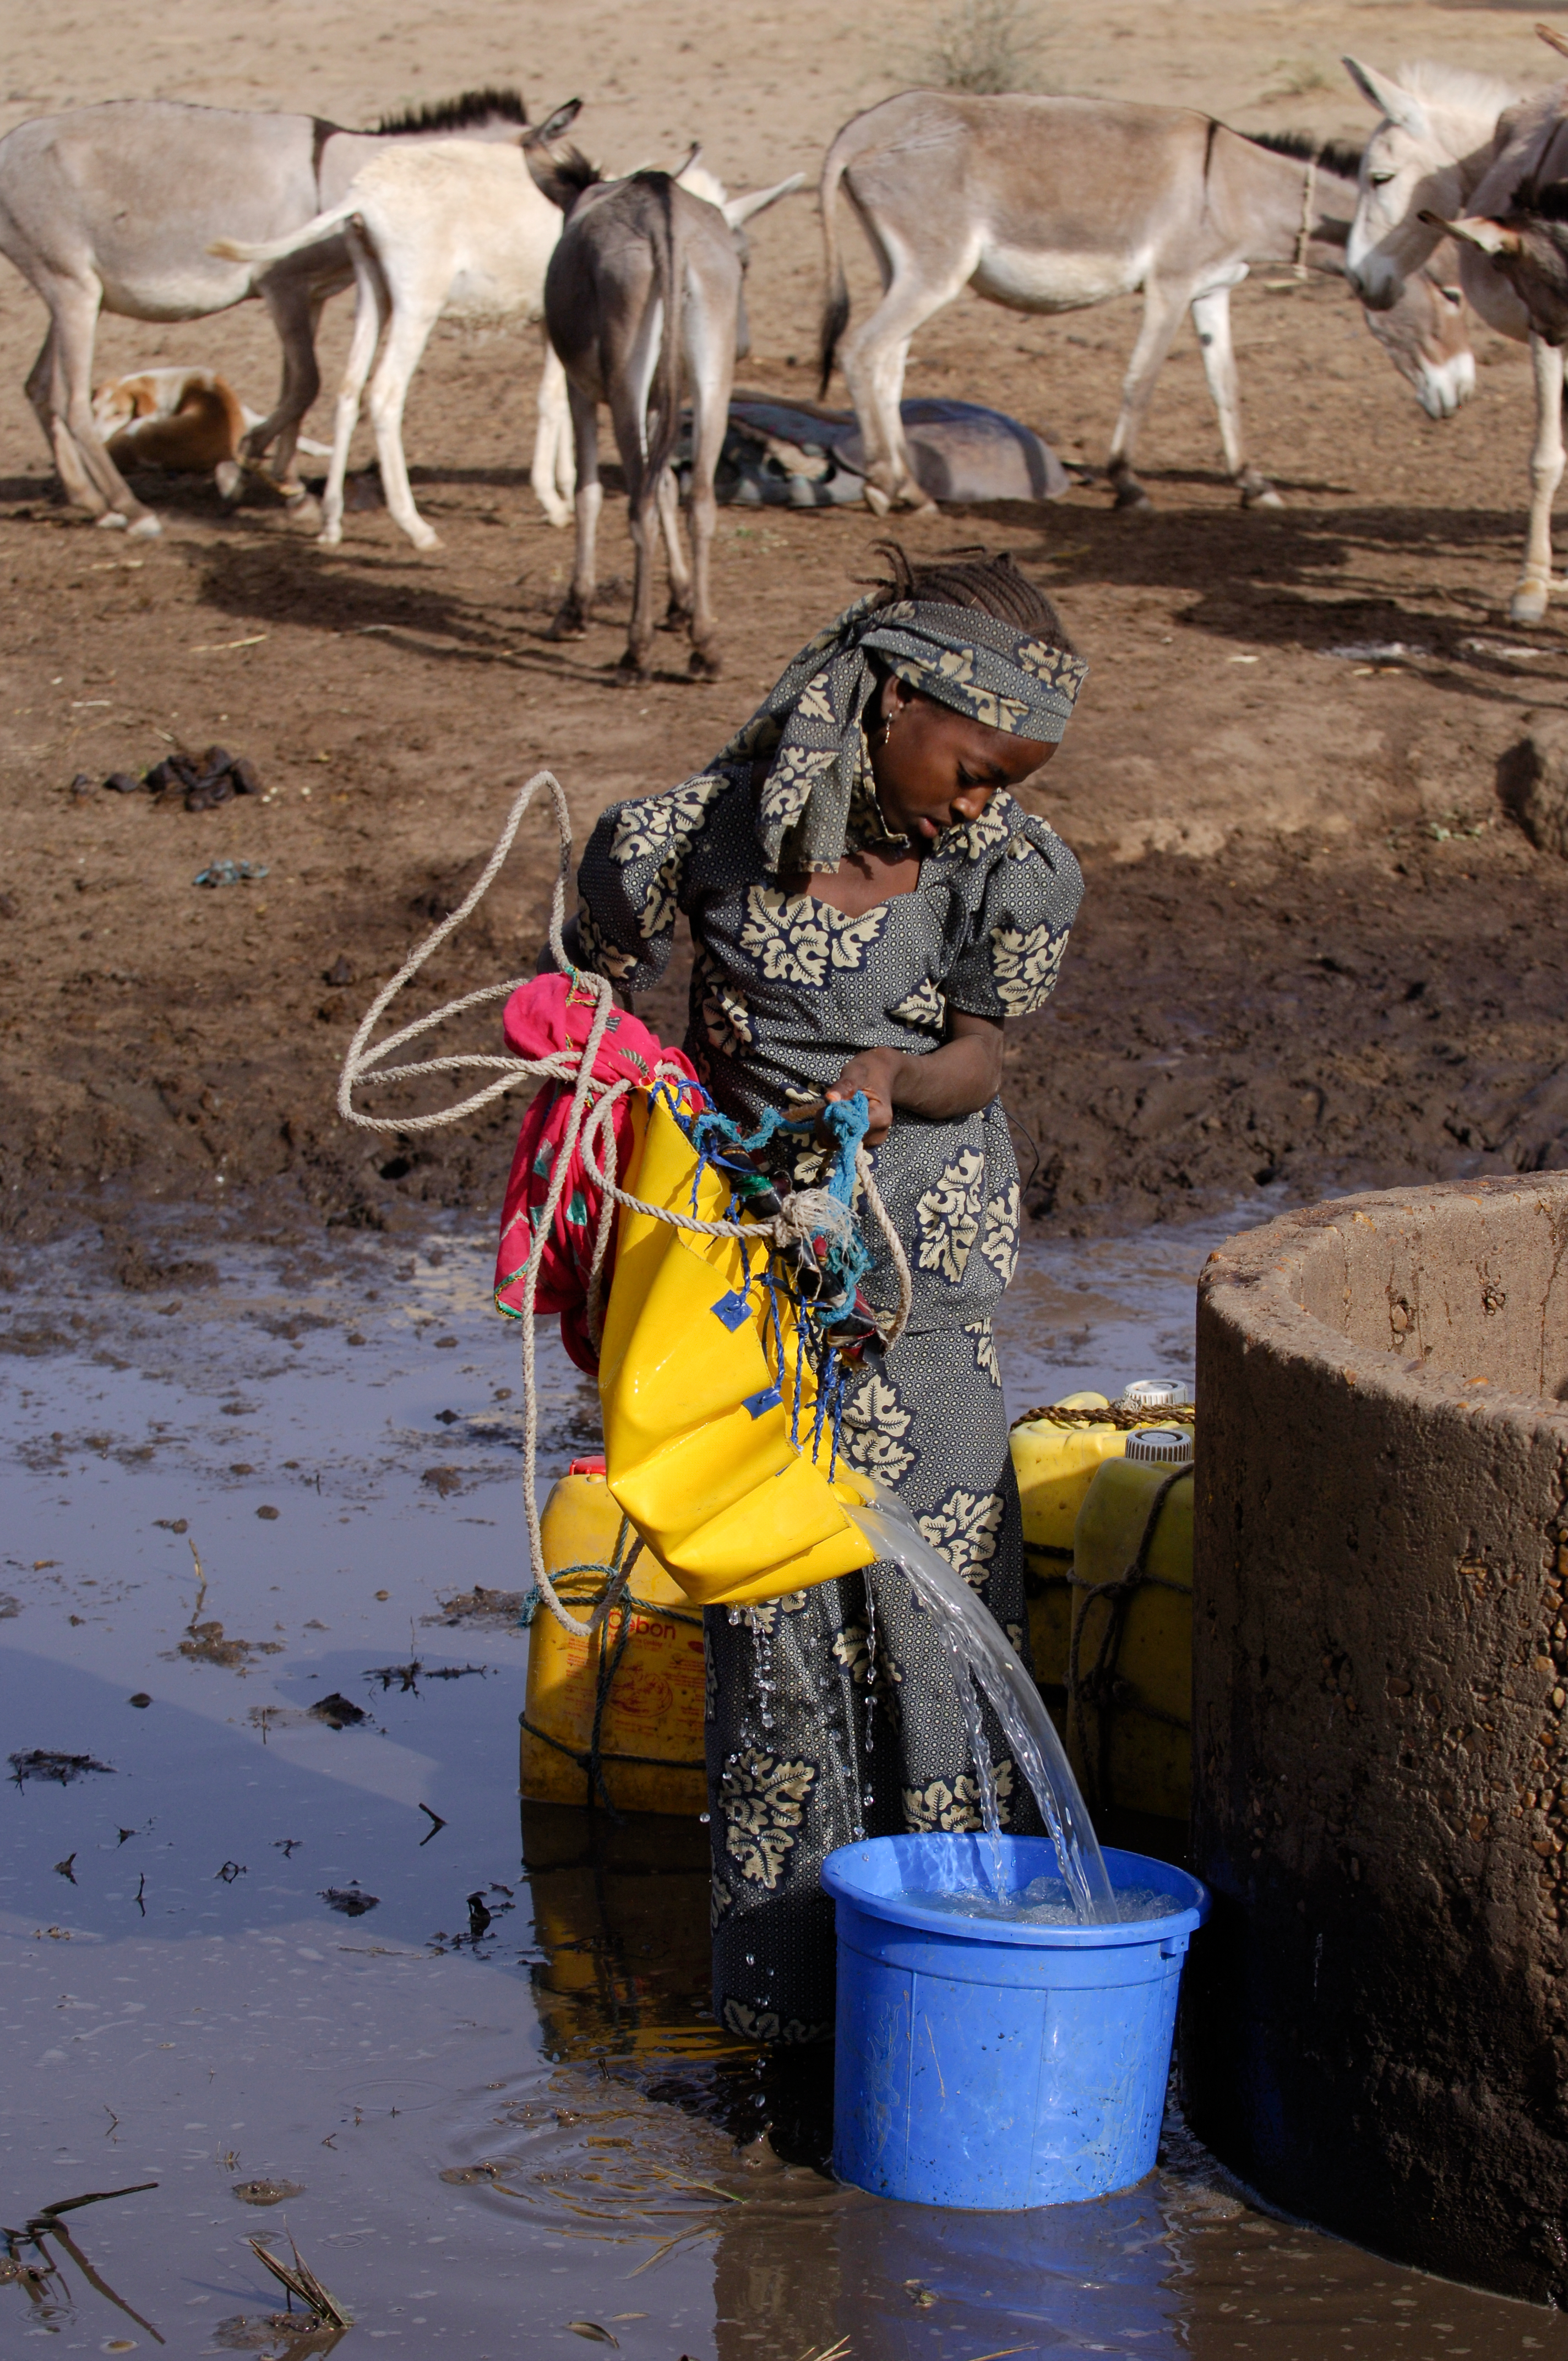 In Niger, Zelifa hauls water from a well using a flexible bucket. Photo from World Vision Australia